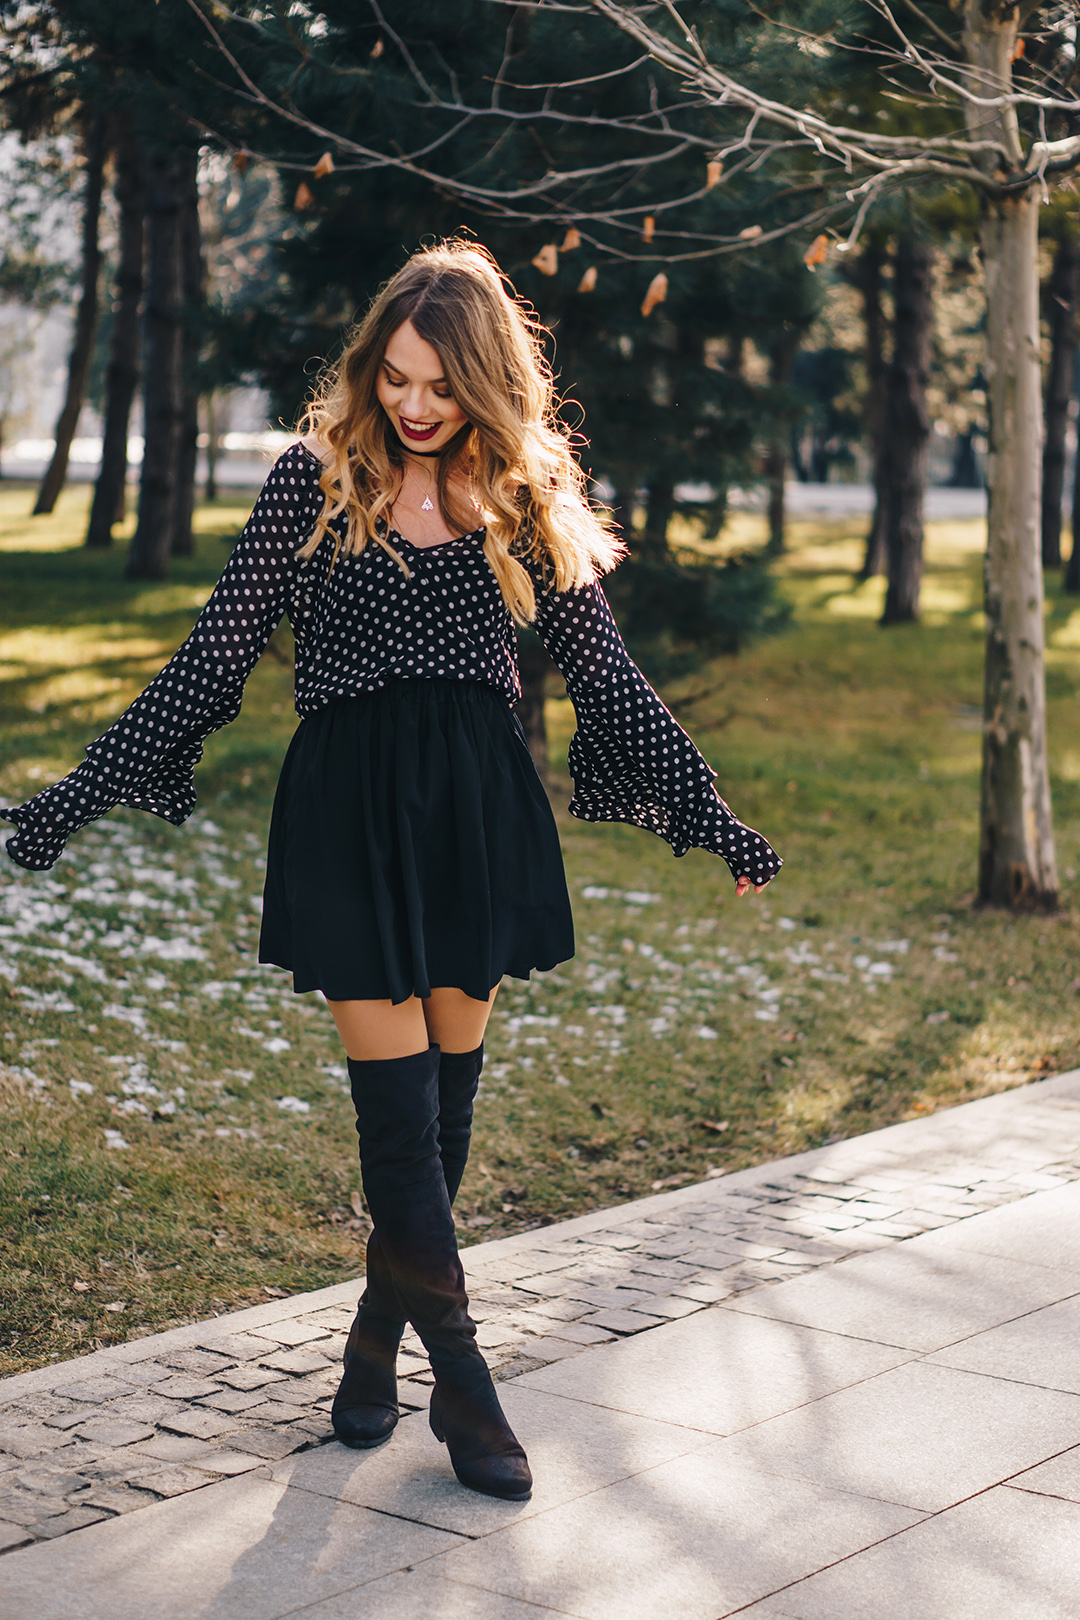 polka-dots-bell-sleeves-blouse-otk-boots-winter-outfit-4